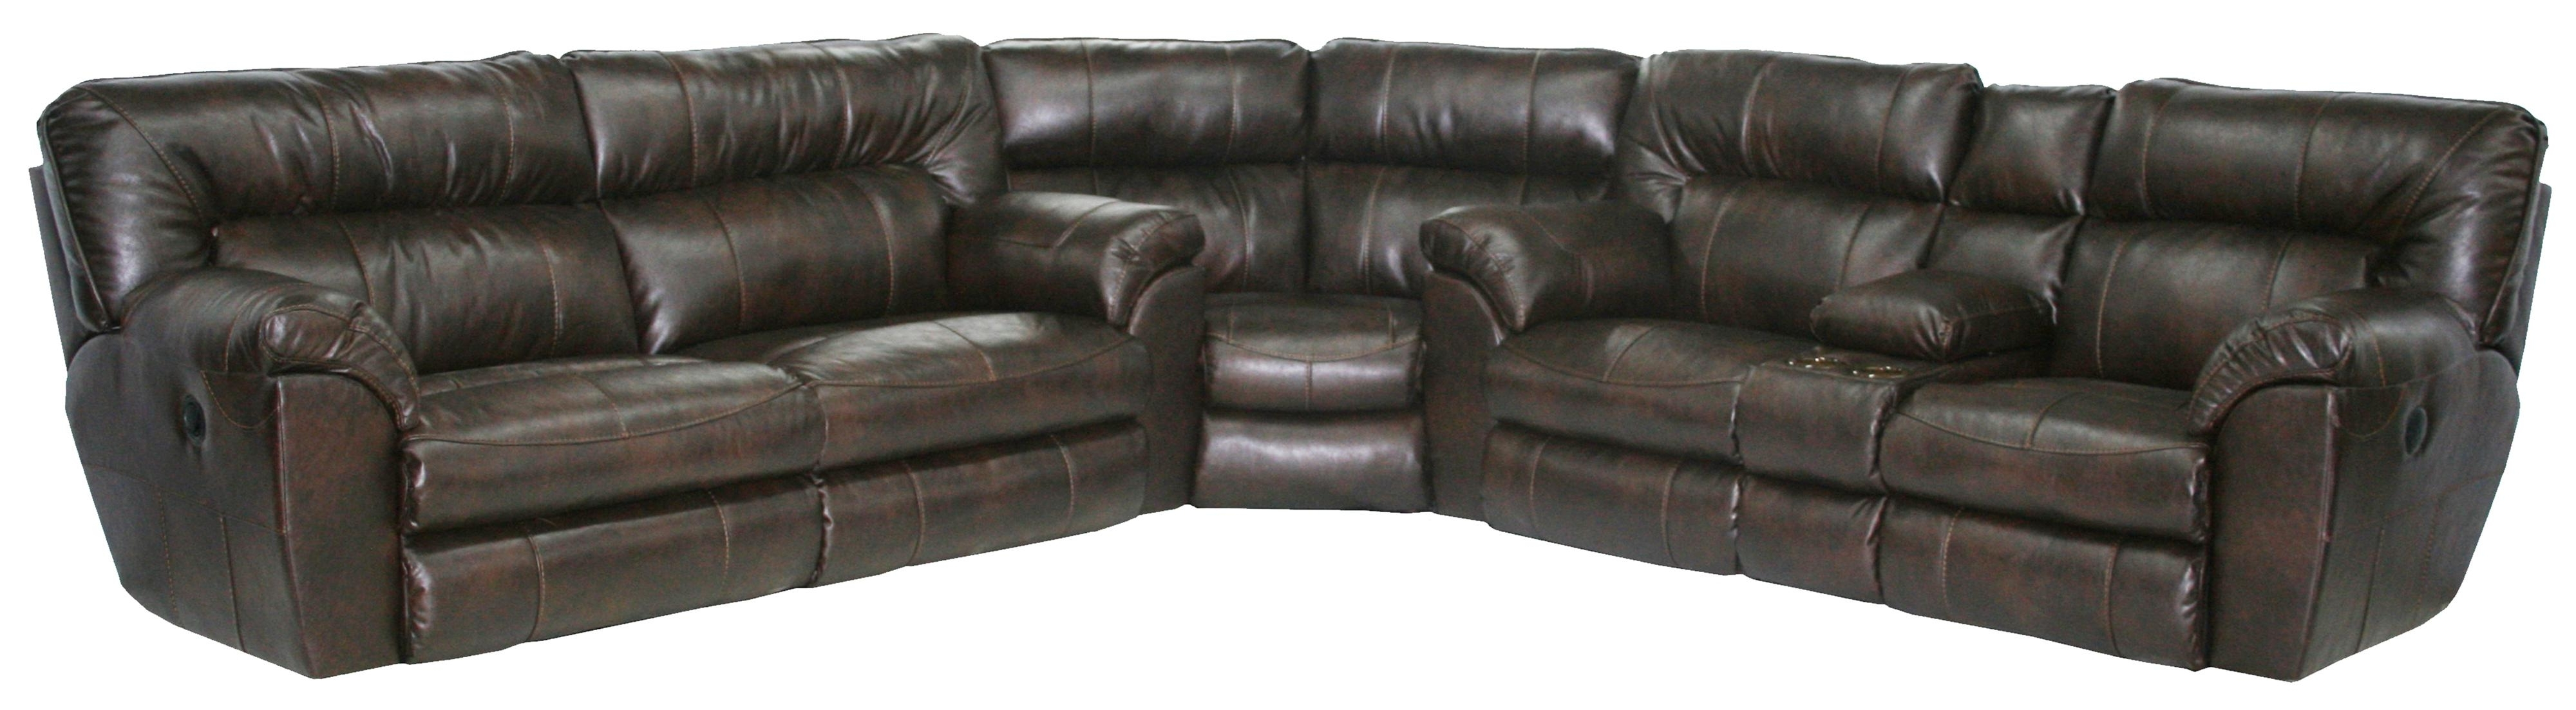 Power Reclining Sectional Sofa With Left Consolecatnapper With Regard To Latest Sectional Sofas With Consoles (View 11 of 15)